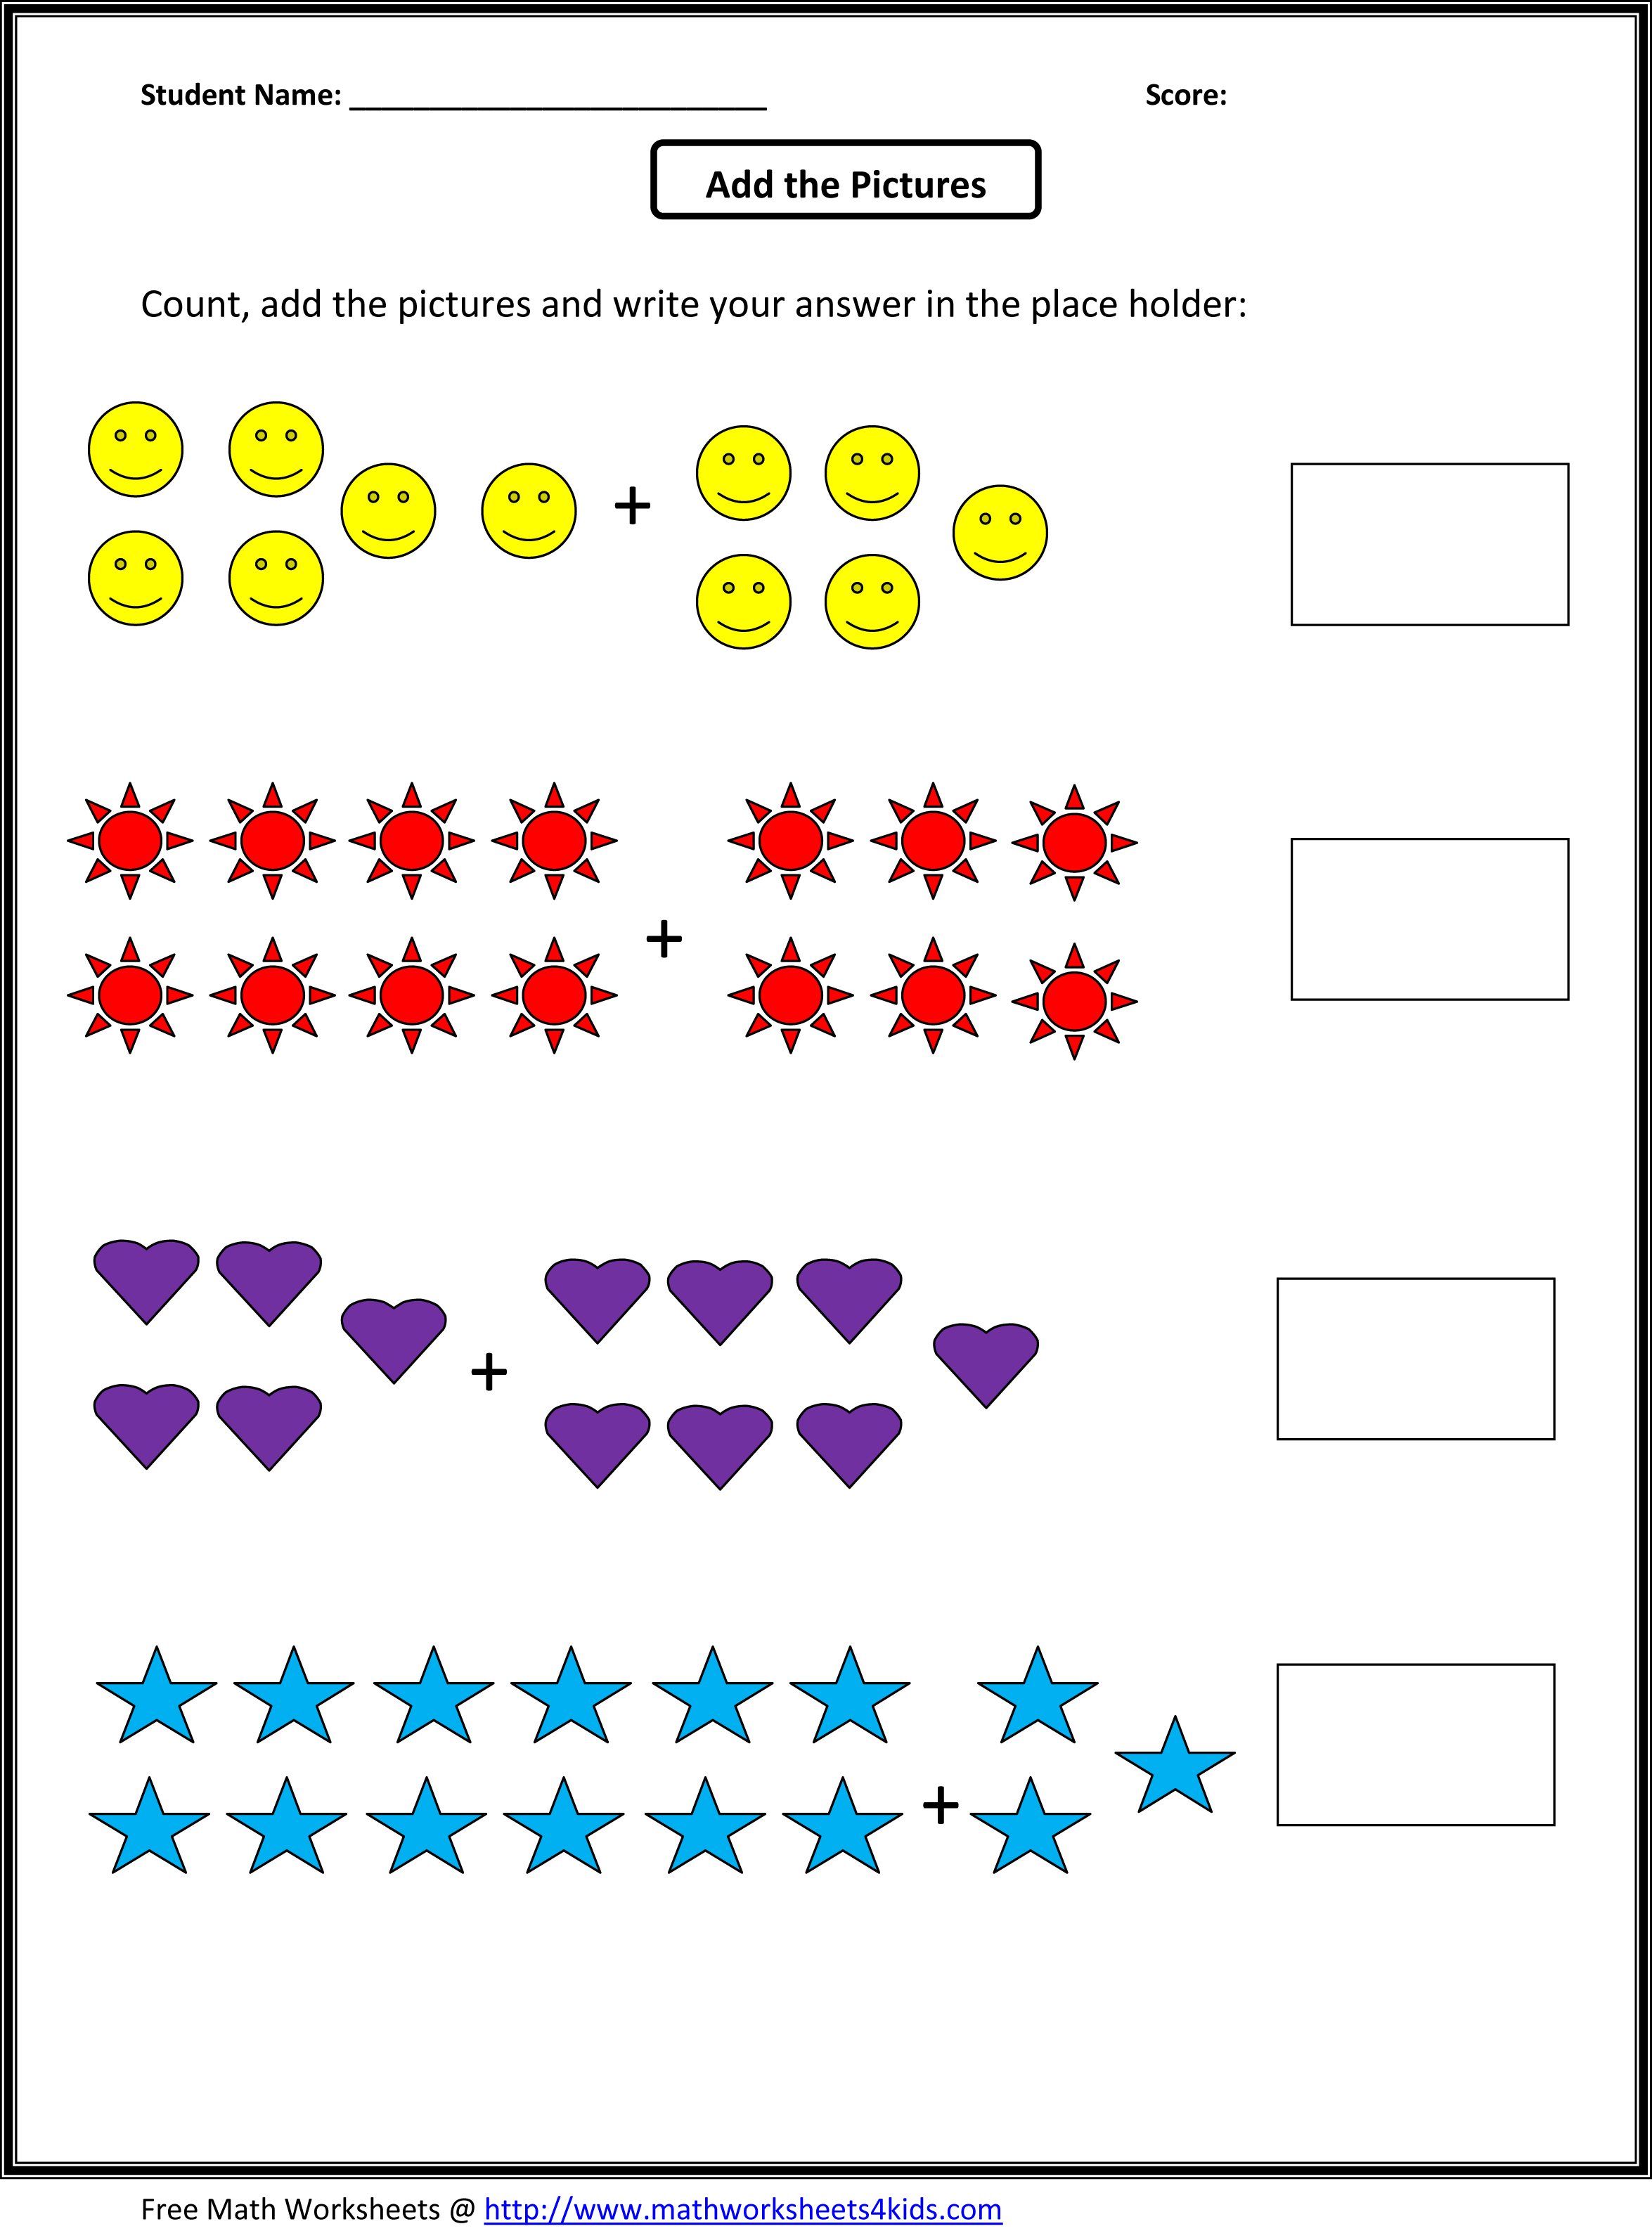 Proatmealus  Ravishing Grade  Maths Worksheet  Reocurent With Likable Math Worksheets For St Grade Free  Reocurent With Beautiful Ks Money Worksheets Also Bereavement Worksheets For Children In Addition Multiplication Worksheets Ks And How To Brush Your Teeth Worksheet As Well As Counting  Worksheets Additionally French Grammar Worksheets Printable From Reocurentcom With Proatmealus  Likable Grade  Maths Worksheet  Reocurent With Beautiful Math Worksheets For St Grade Free  Reocurent And Ravishing Ks Money Worksheets Also Bereavement Worksheets For Children In Addition Multiplication Worksheets Ks From Reocurentcom